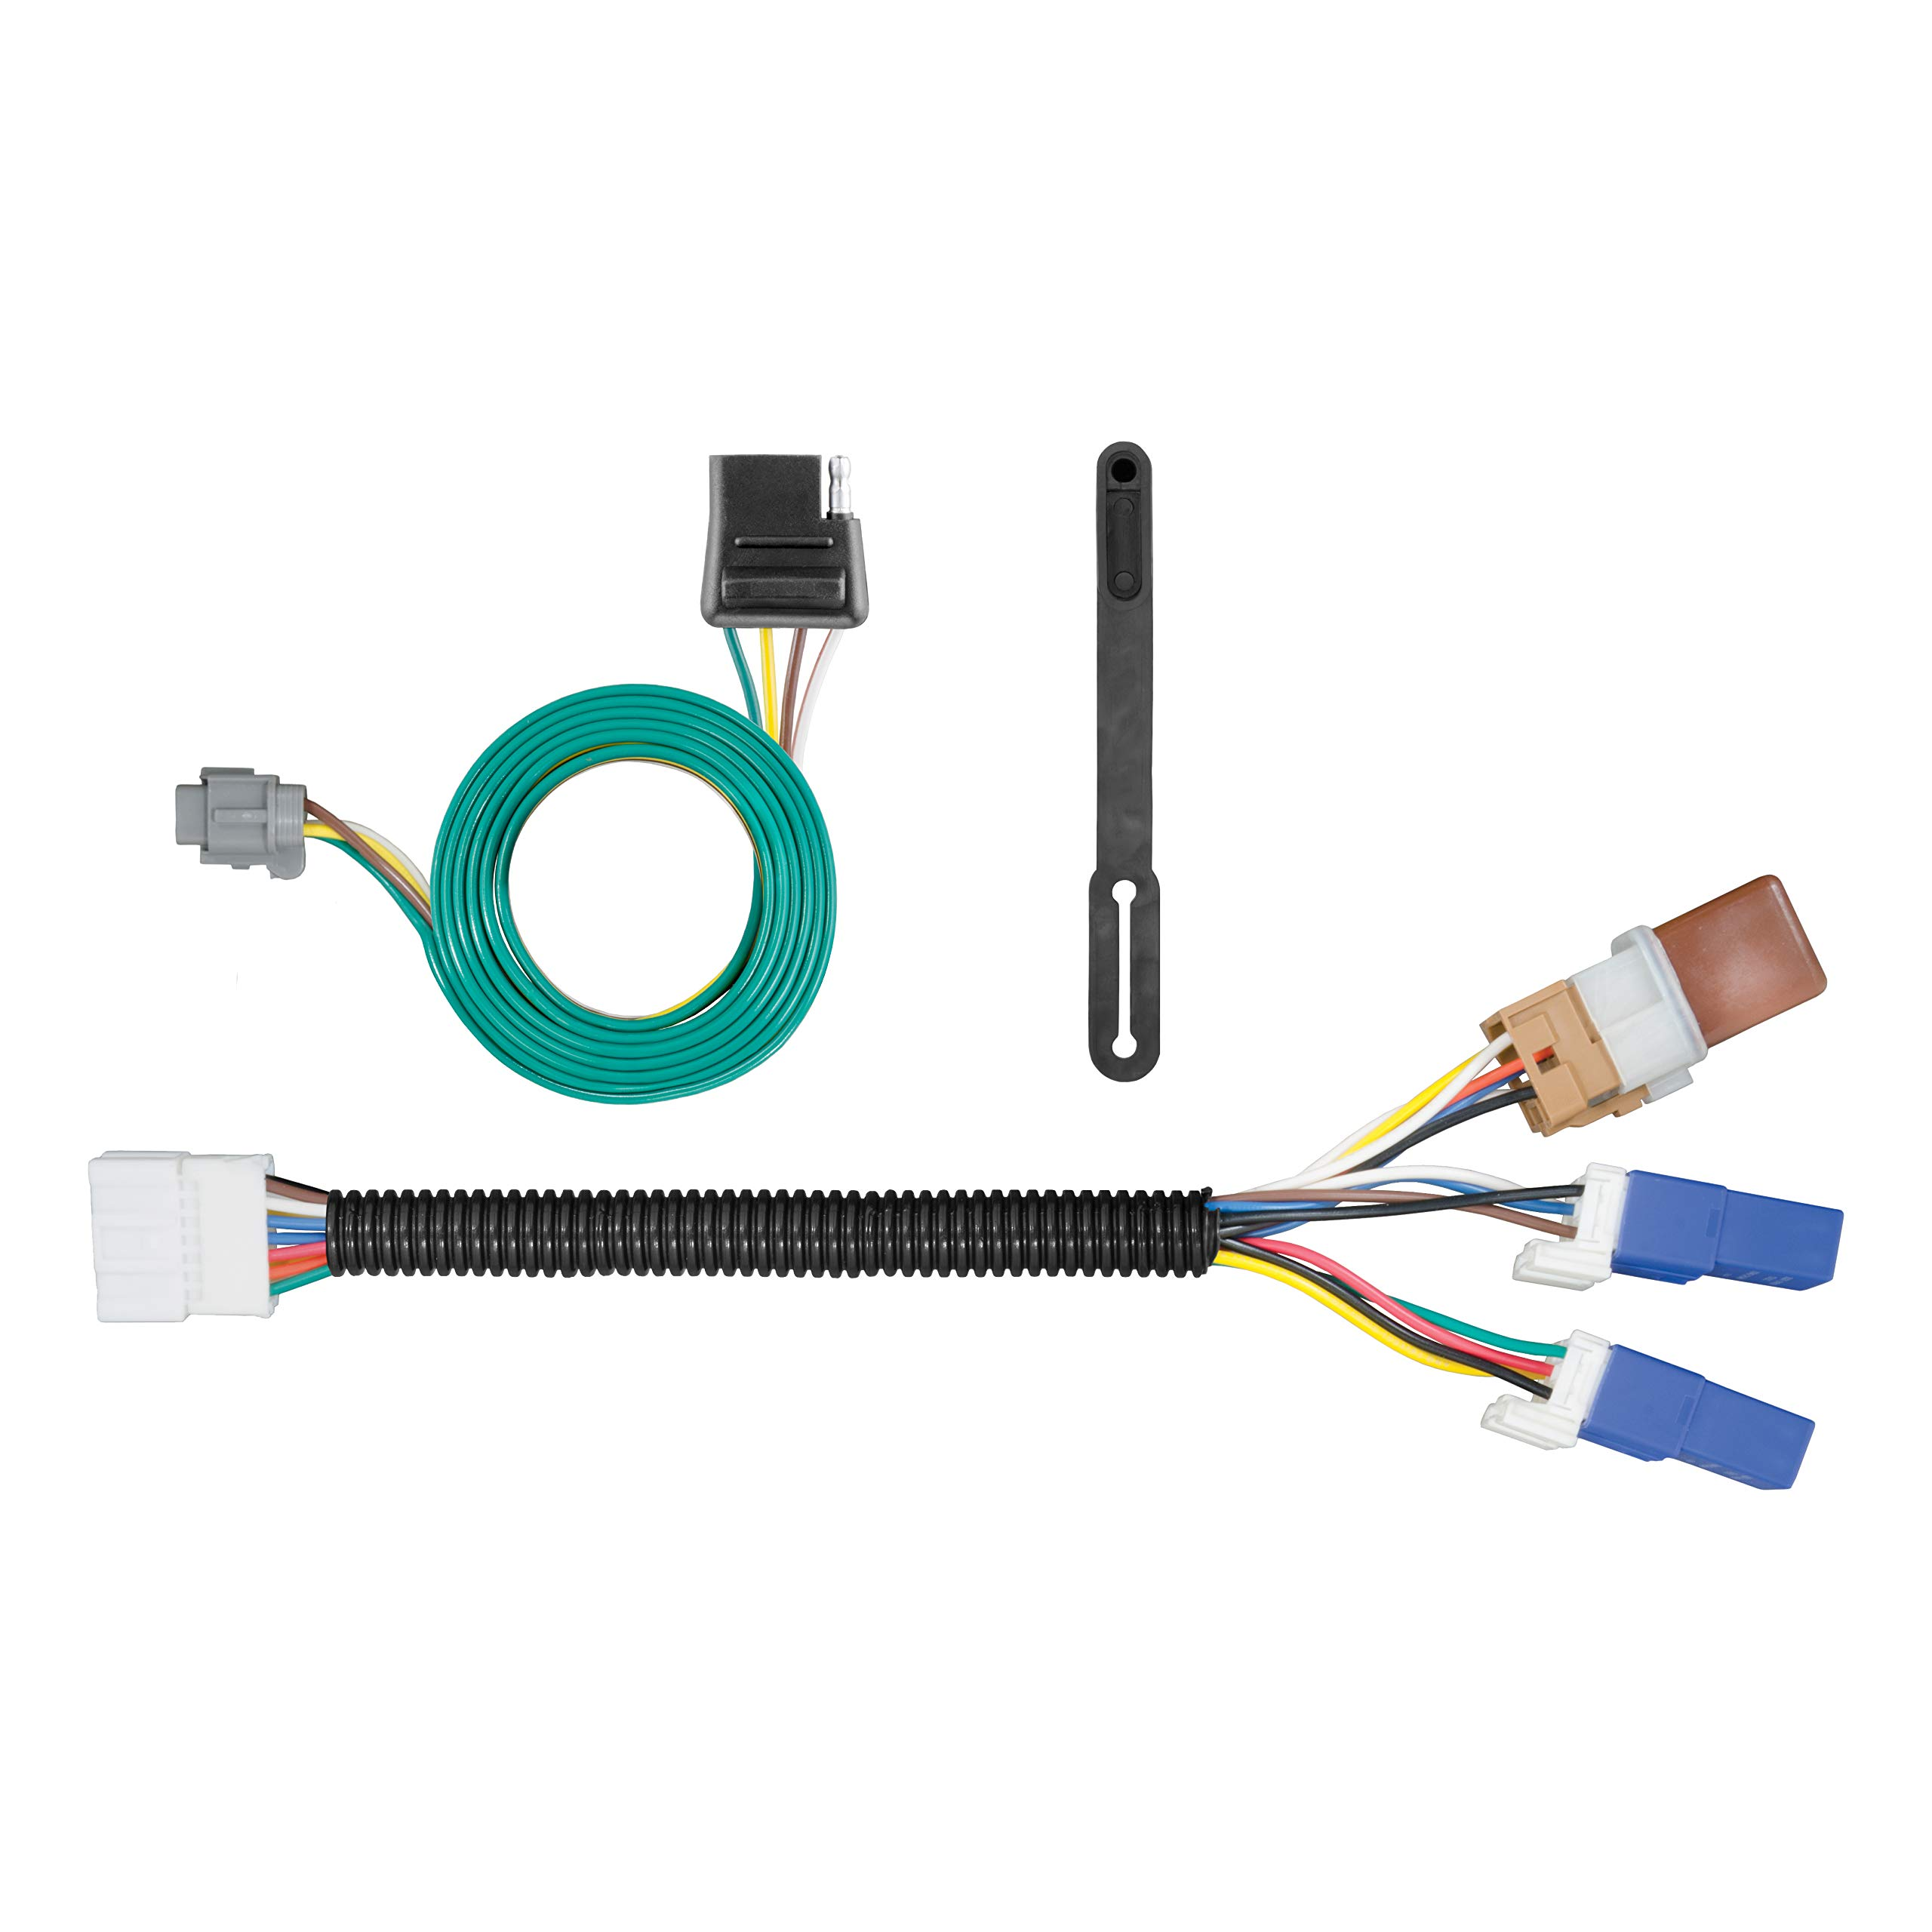 CURT 56225 Vehicle-Side Custom 4-Pin Trailer Wiring Harness for Select Nissan Frontier, Pathfinder, Xterra, Suzuki Equator by Curt Manufacturing